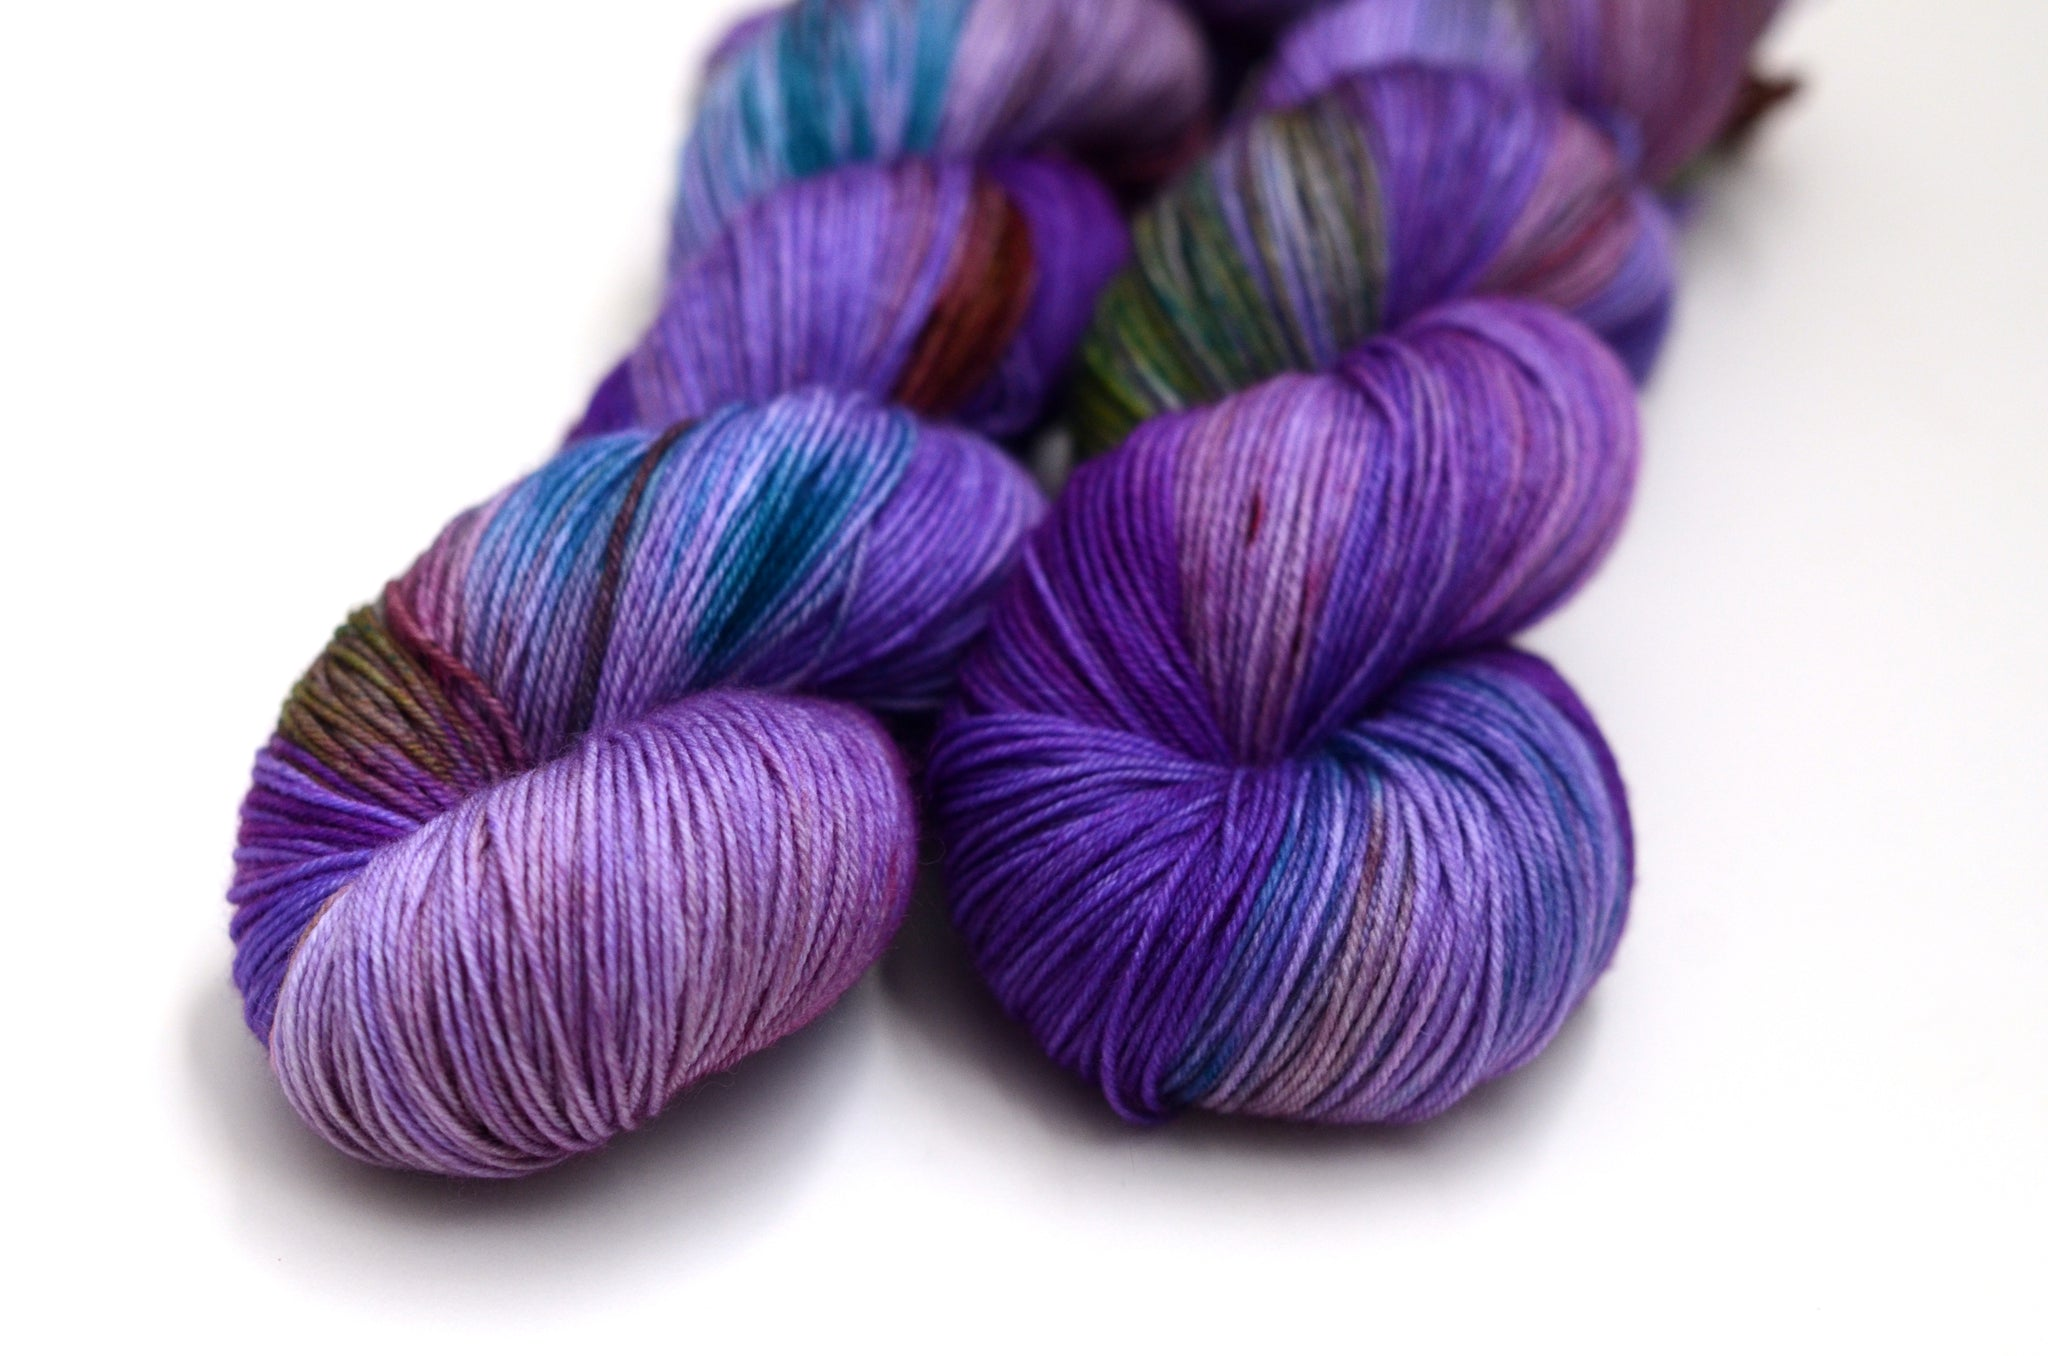 A Bunch of Hocus Pocus - Hand Dyed Yarn